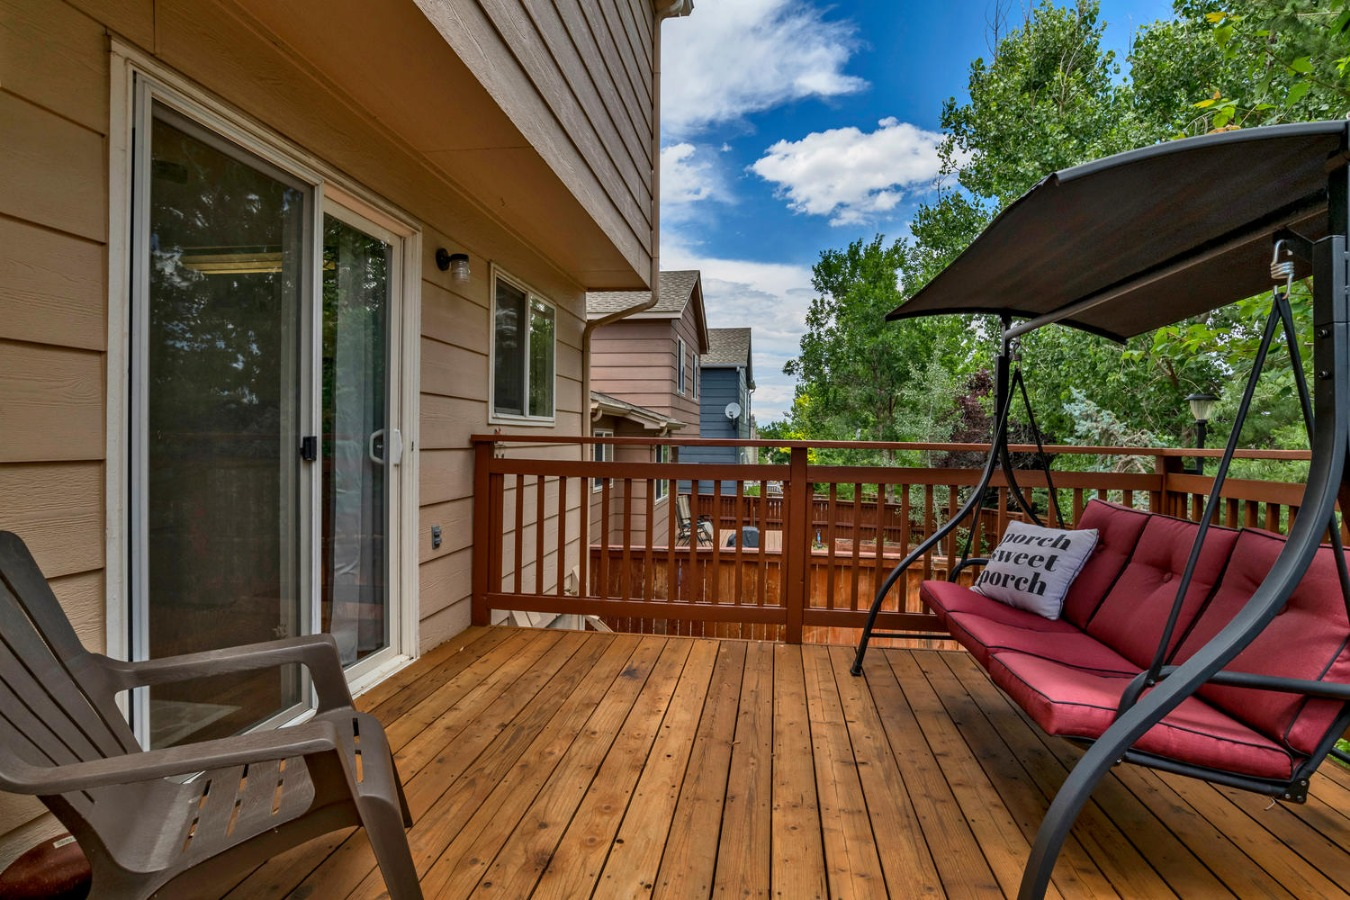 Great Private Shaded Deck for Summer Fun